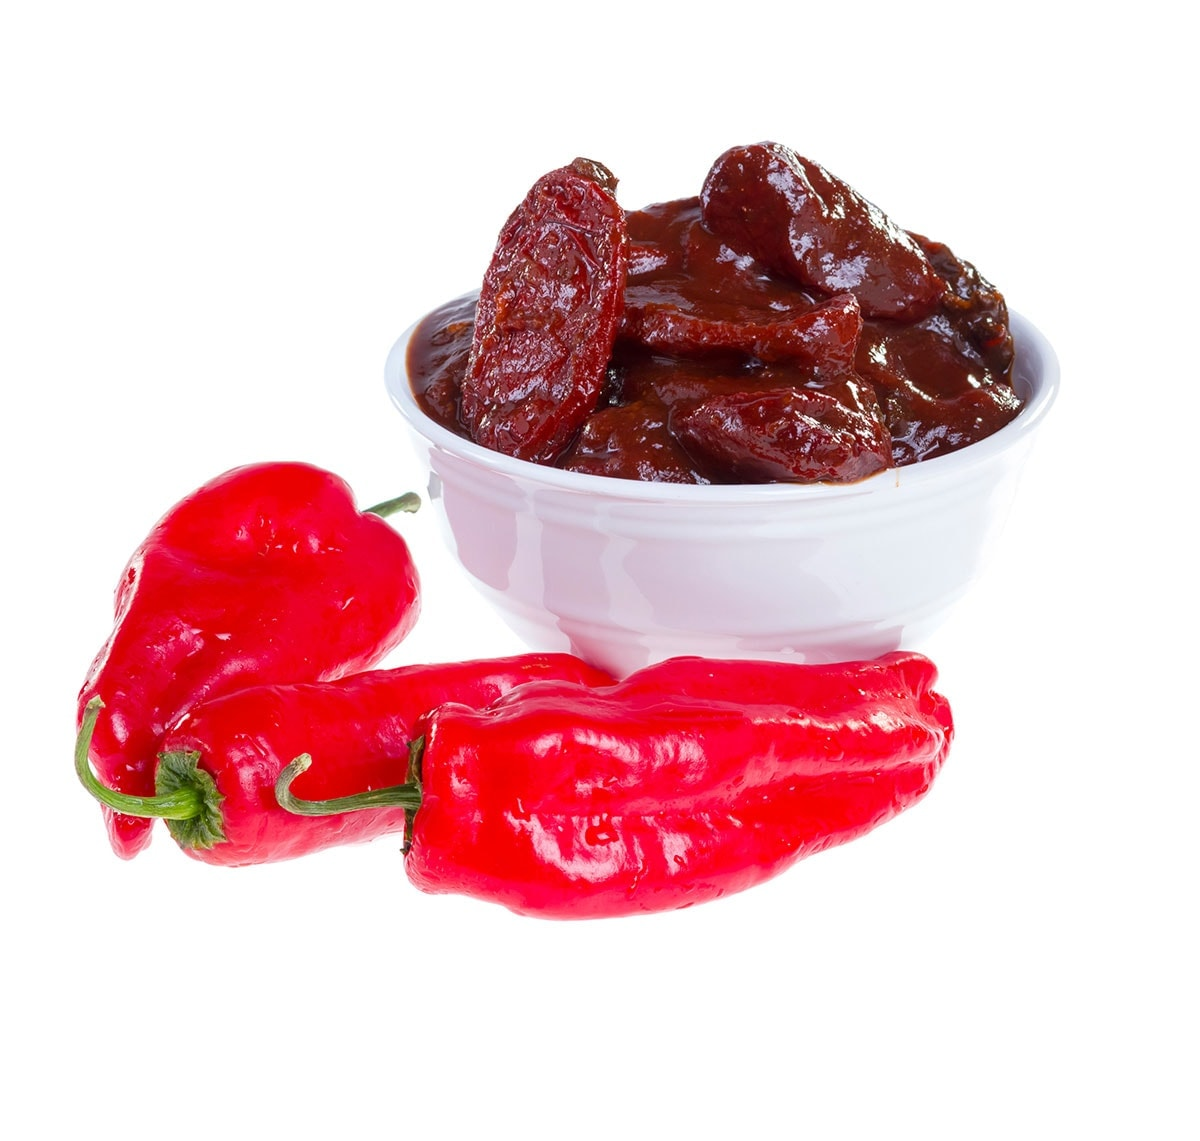 chipotle pepper and chipotle in adobo sauce on a white background